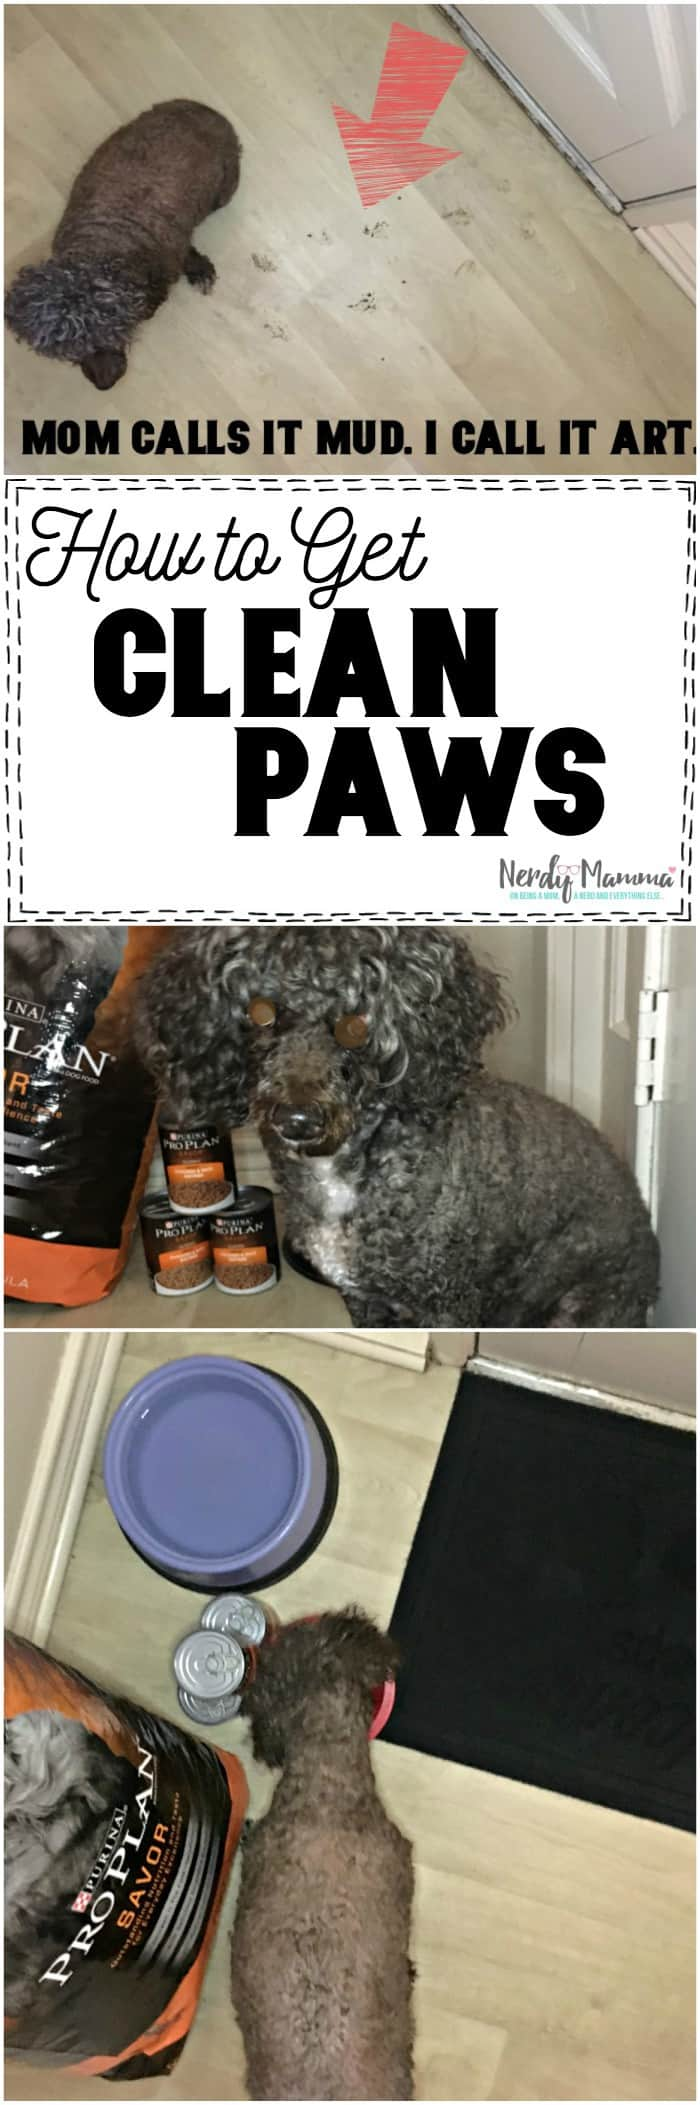 how to get clean paws